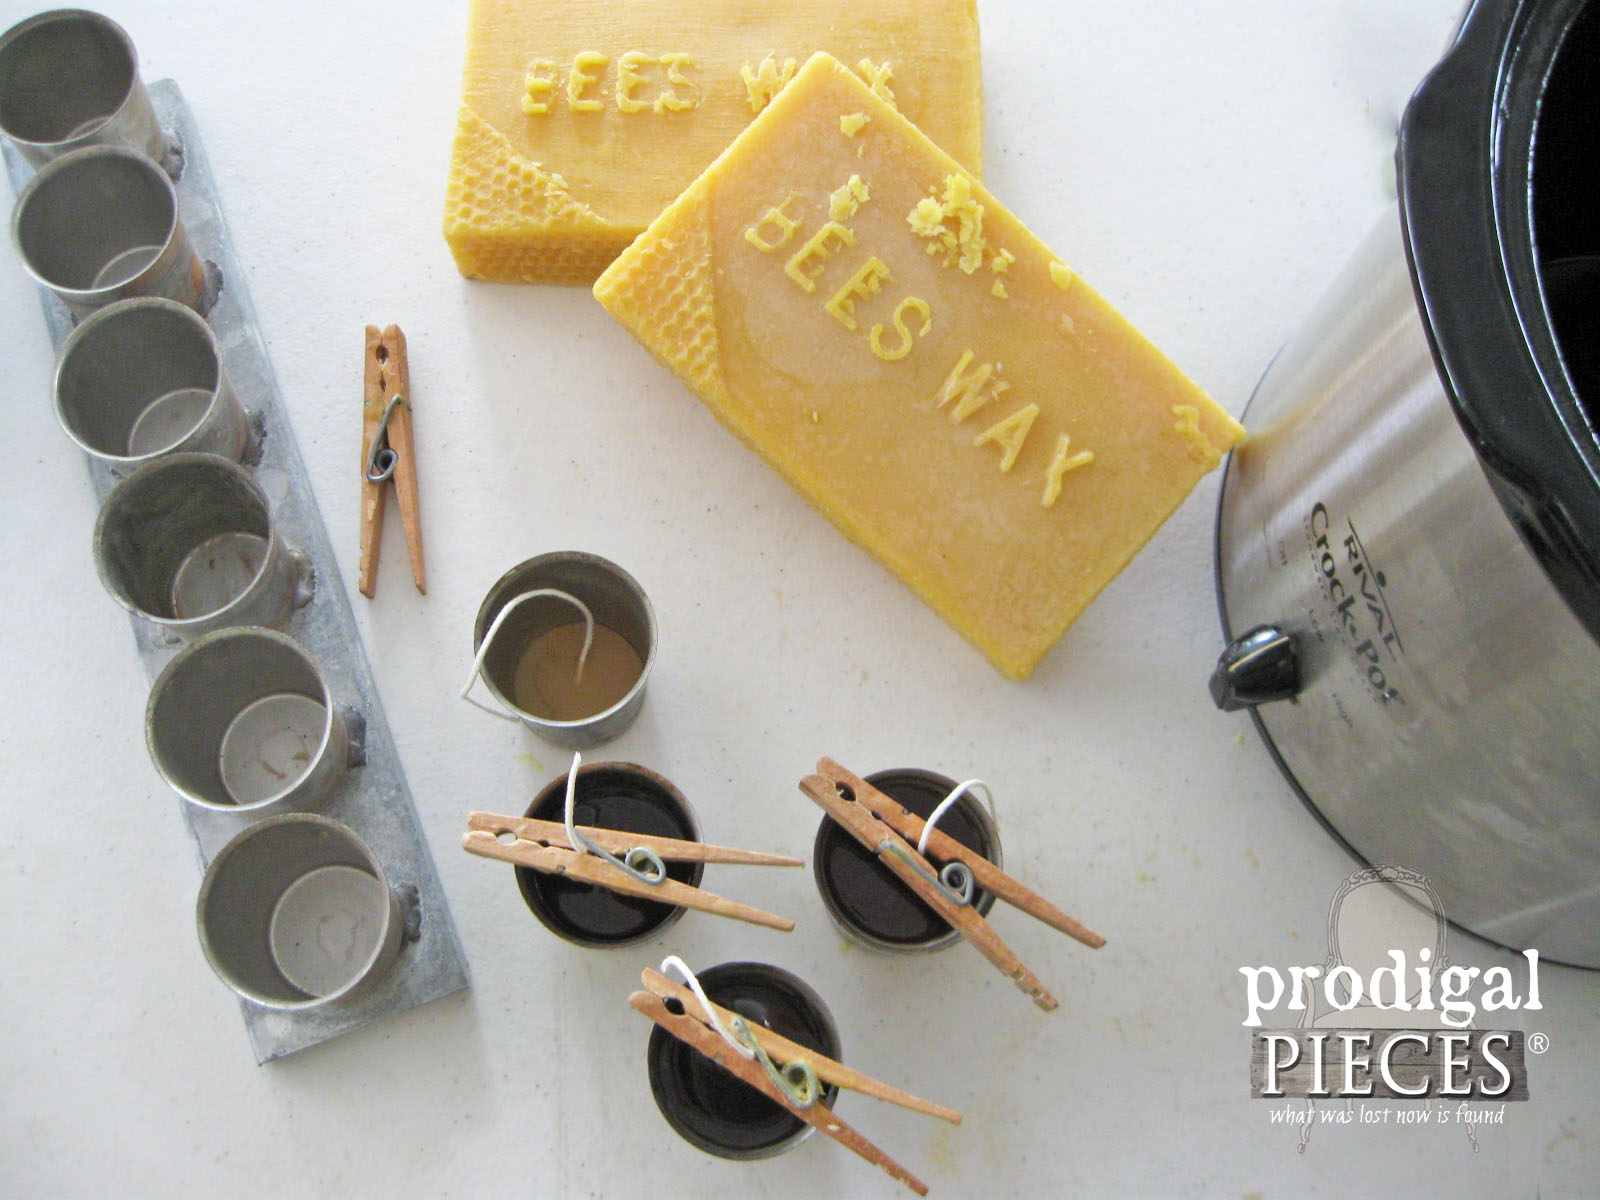 Making Natural Beeswax Candles by Prodigal Pieces | www.prodigalpieces.com